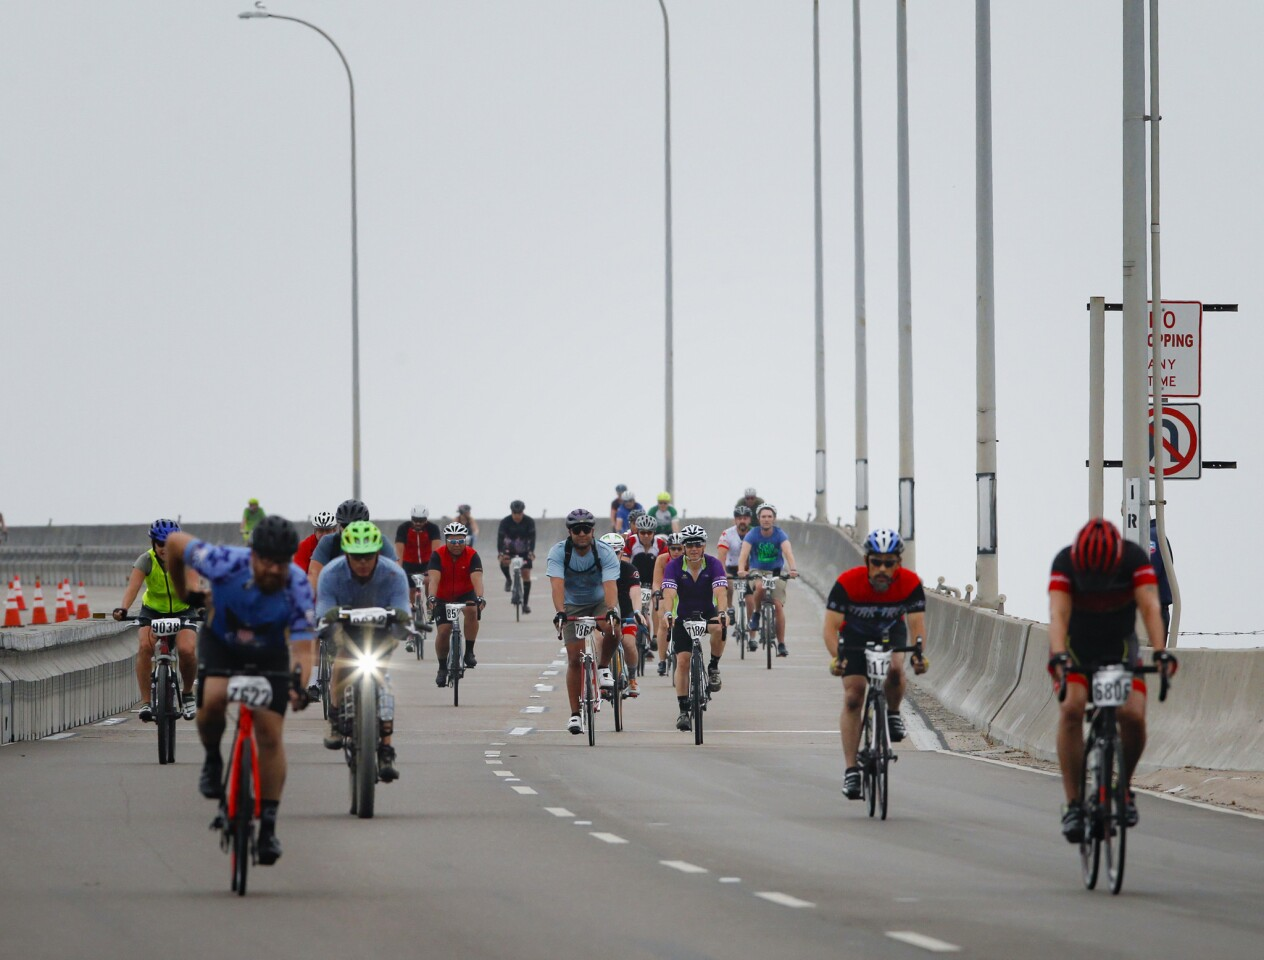 Hundreds of bicycle enthusiast took part in Sunday's Bike the Bay, 25-mile bike ride. The course included a ride over the Coronado Bay Bridge, and through Imperial Beach, Chula Vista, National City and back to Embarcadero Marine Park South in San Diego.